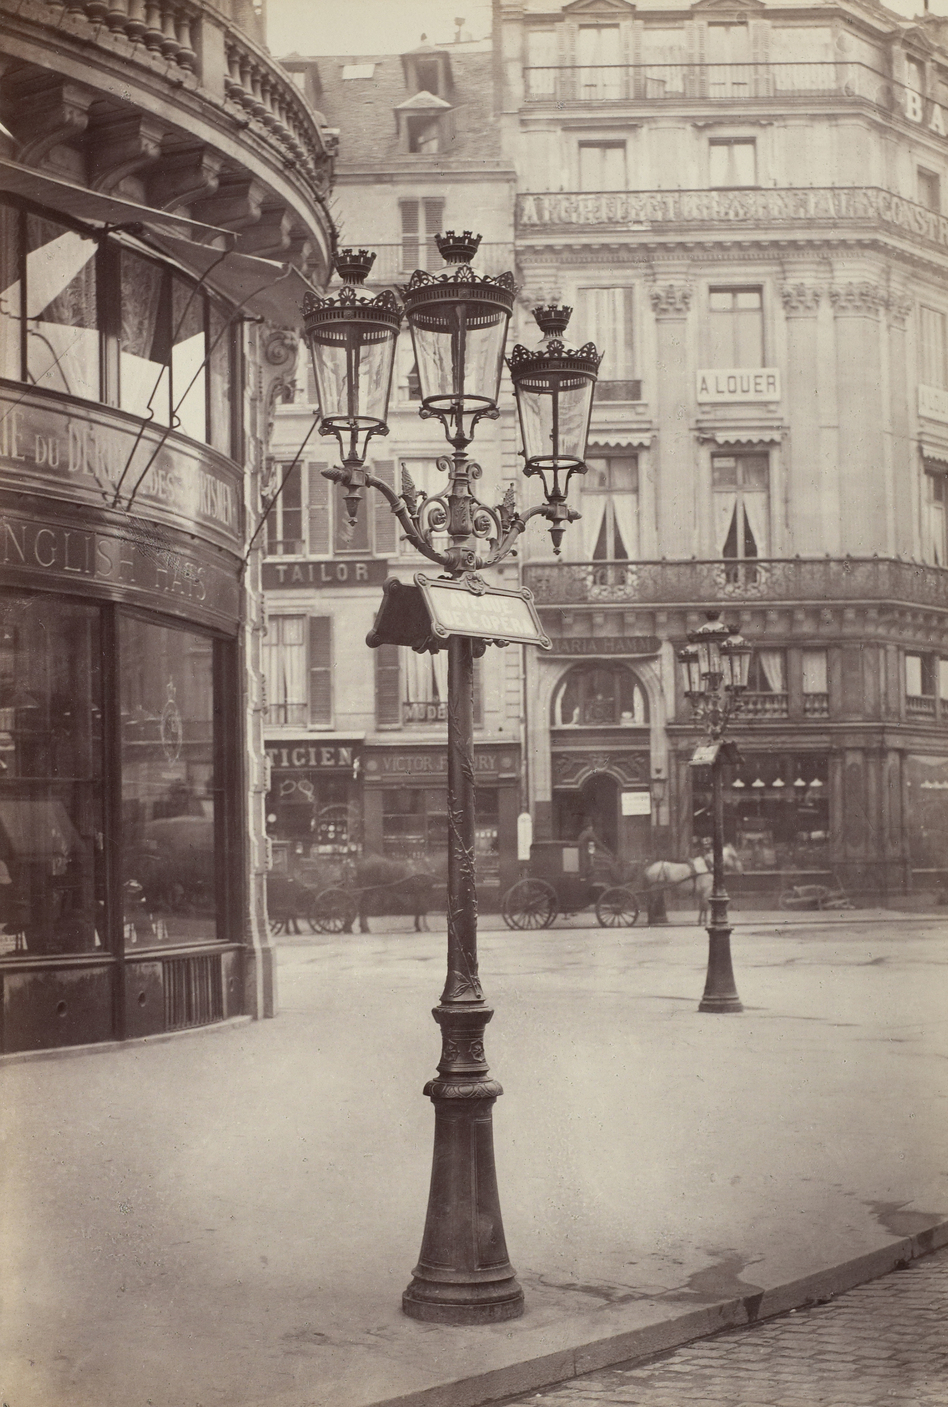 The elegant gas lamps of Paris' Haussmann transformation, seen here in 1877-1878, also contributed to its reputation as a modern metropolis. (The Troob Family Foundation Images/Sterling and Francine Clark Art Institute)